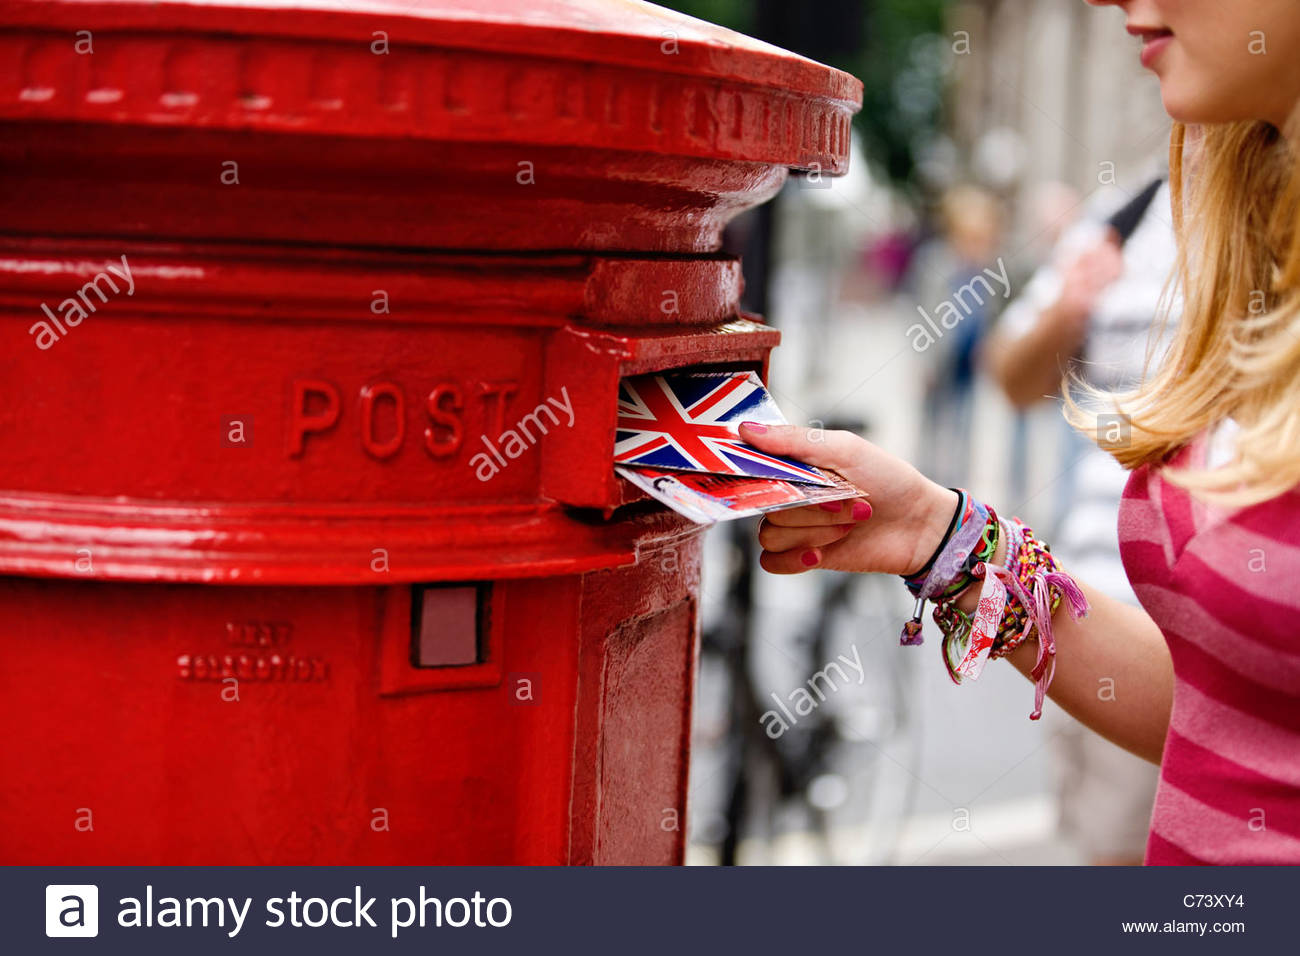 A teenage girl putting postcards into a red letterbox - Stock Image